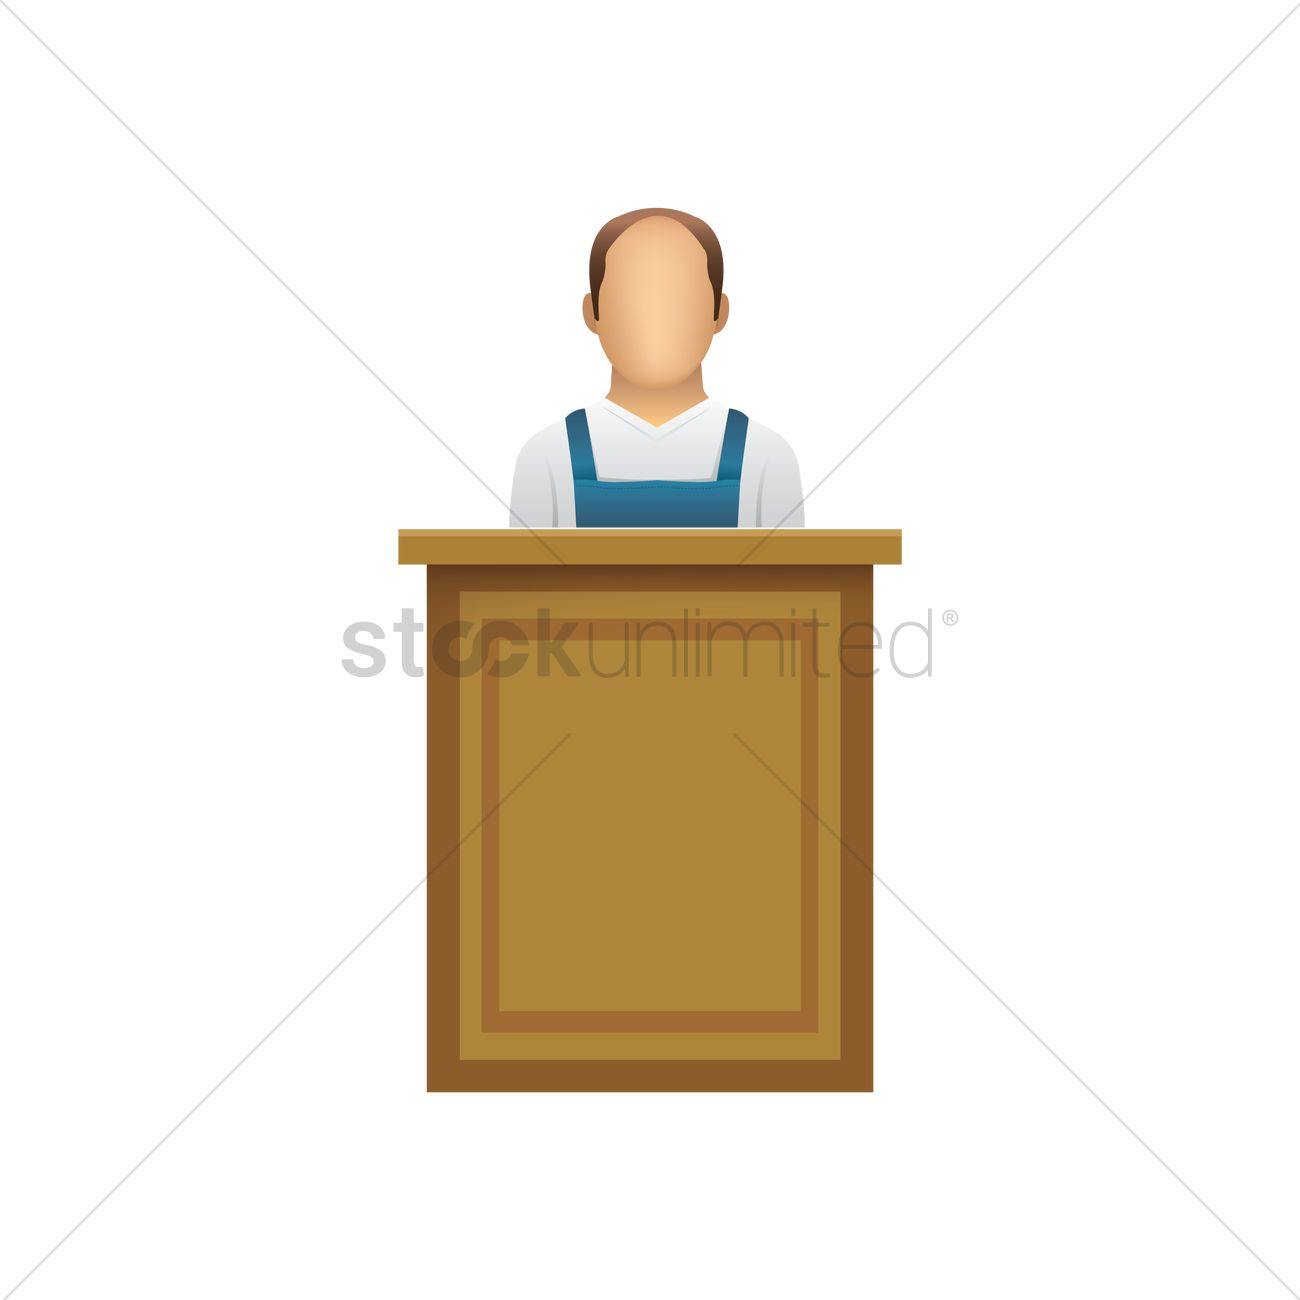 Court witness at a podium Vector Image.